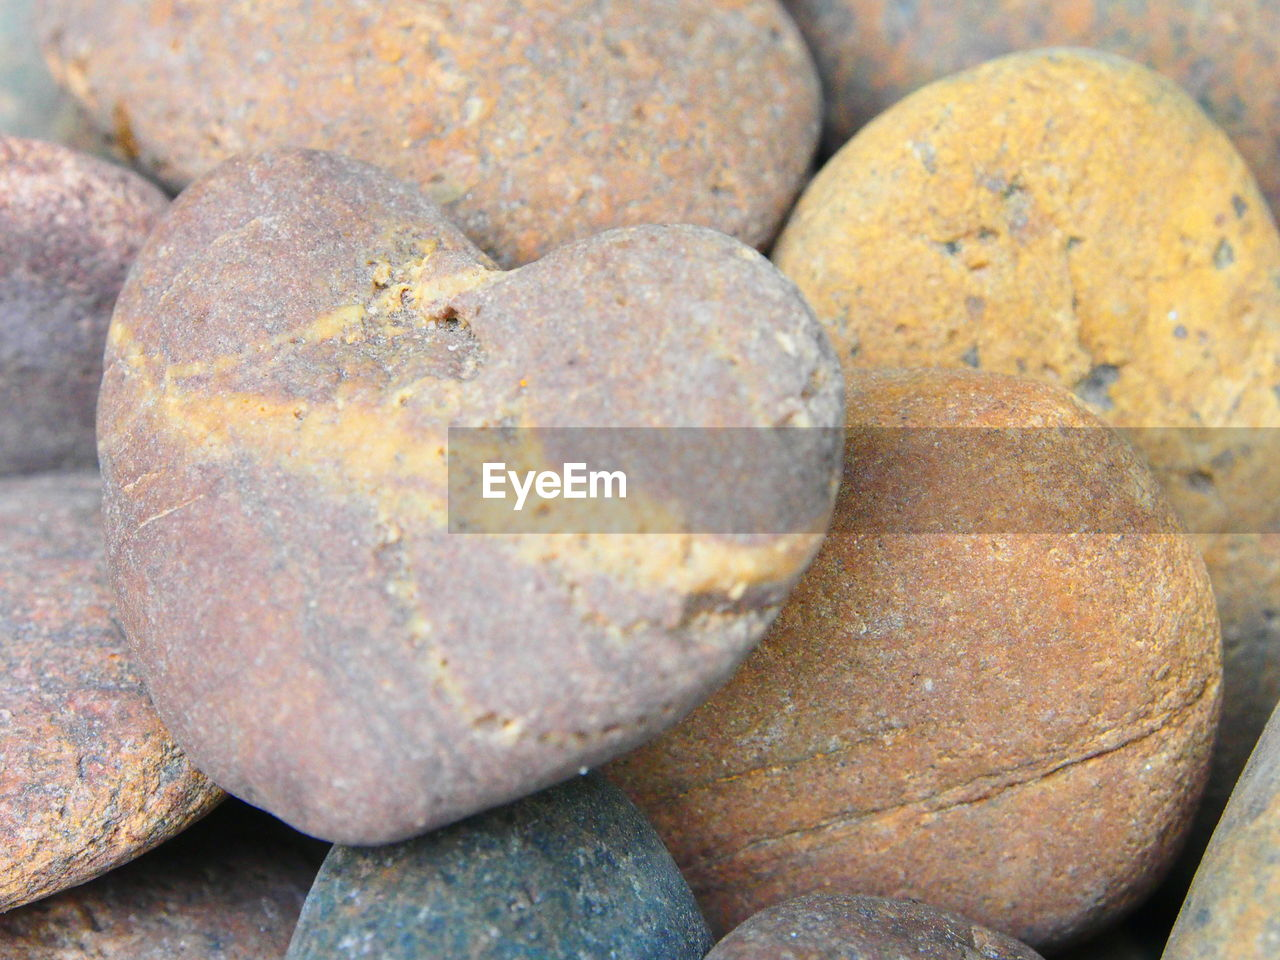 rock - object, pebble, no people, close-up, day, nature, sea life, outdoors, fragility, animal themes